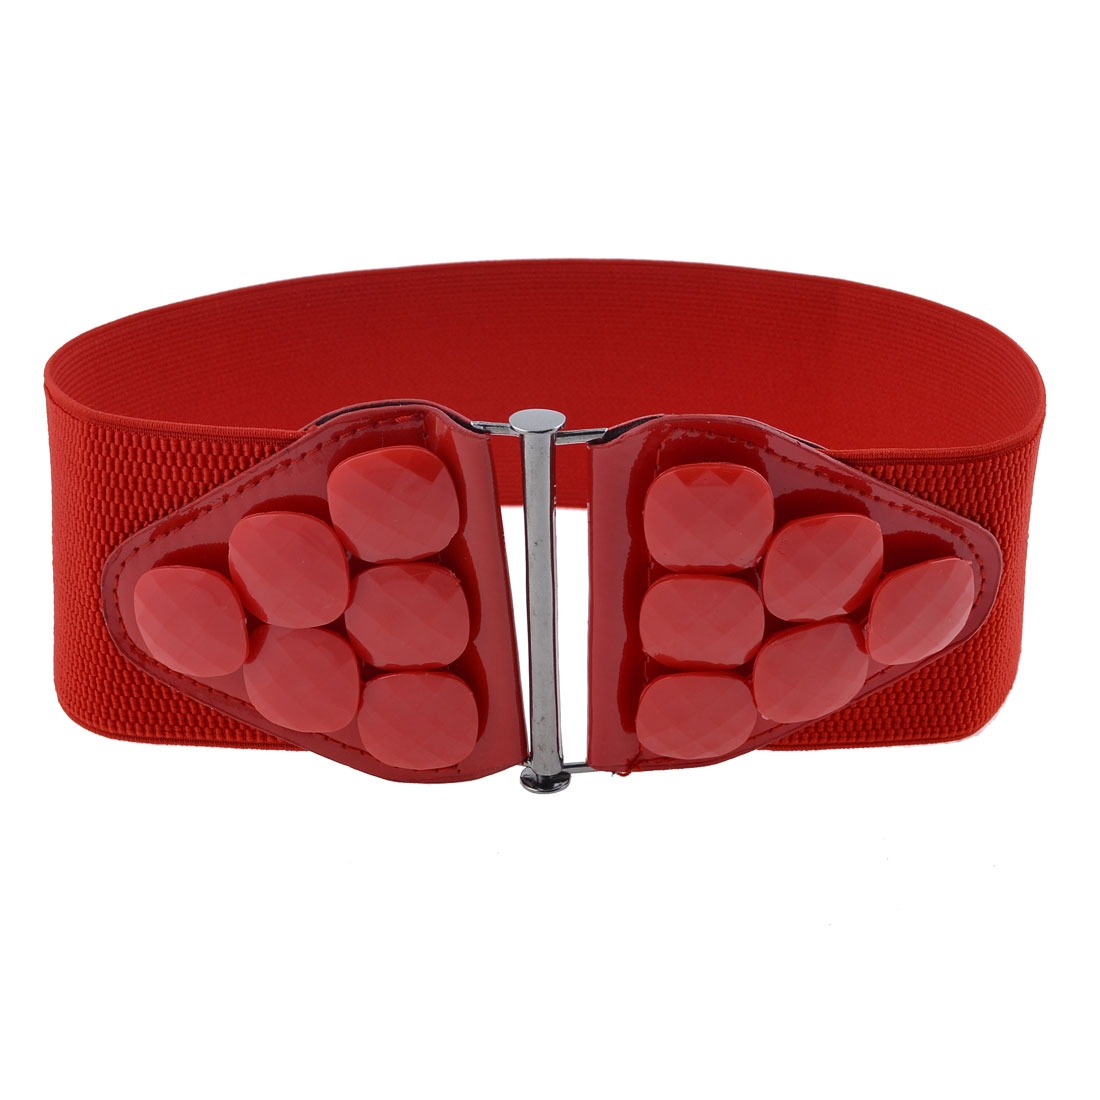 Women Beads Decor Metal Interlocking Buckle Strentch Waist Cinch Belt Waistbelt Red